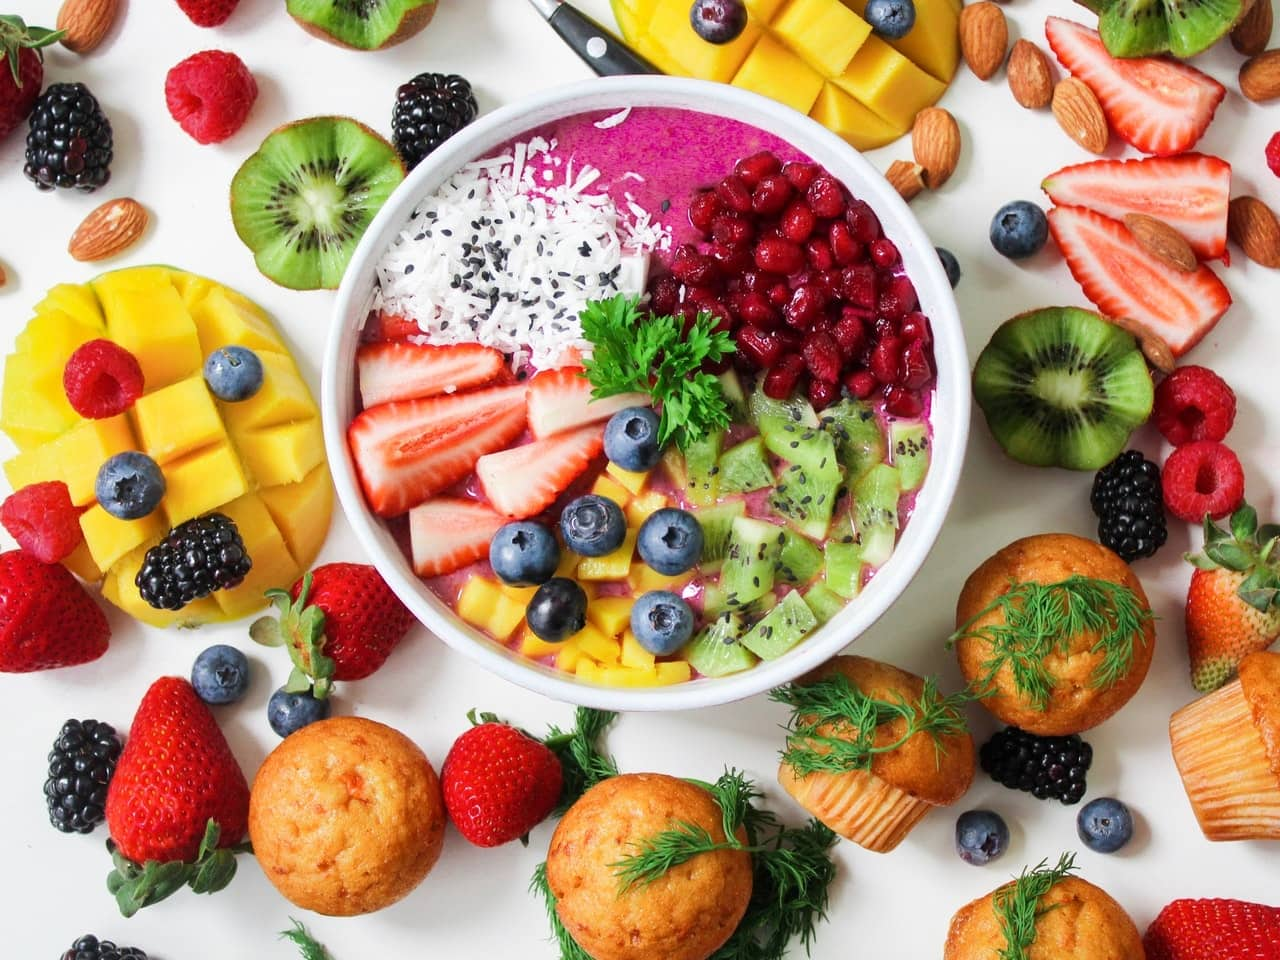 Top 5 Foods for Students to Enhance Capability of Their Minds